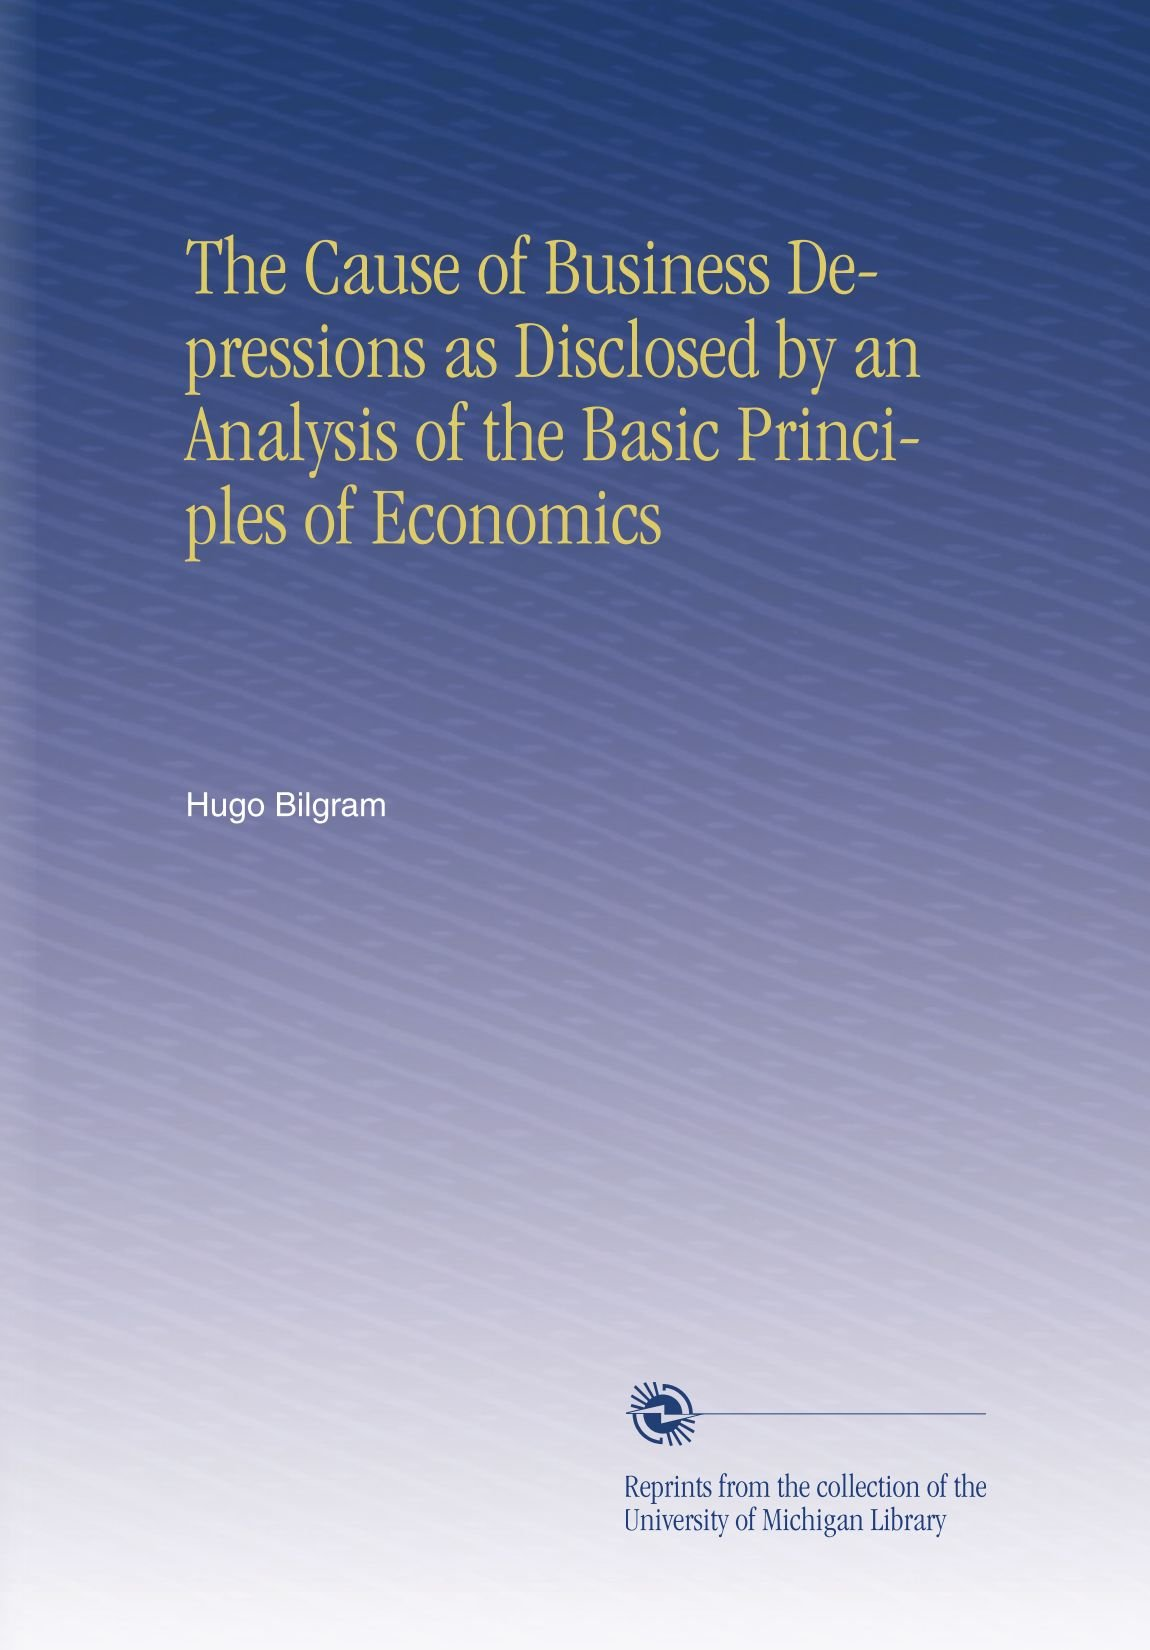 Download The Cause of Business Depressions as Disclosed by an Analysis of the Basic Principles of Economics pdf epub